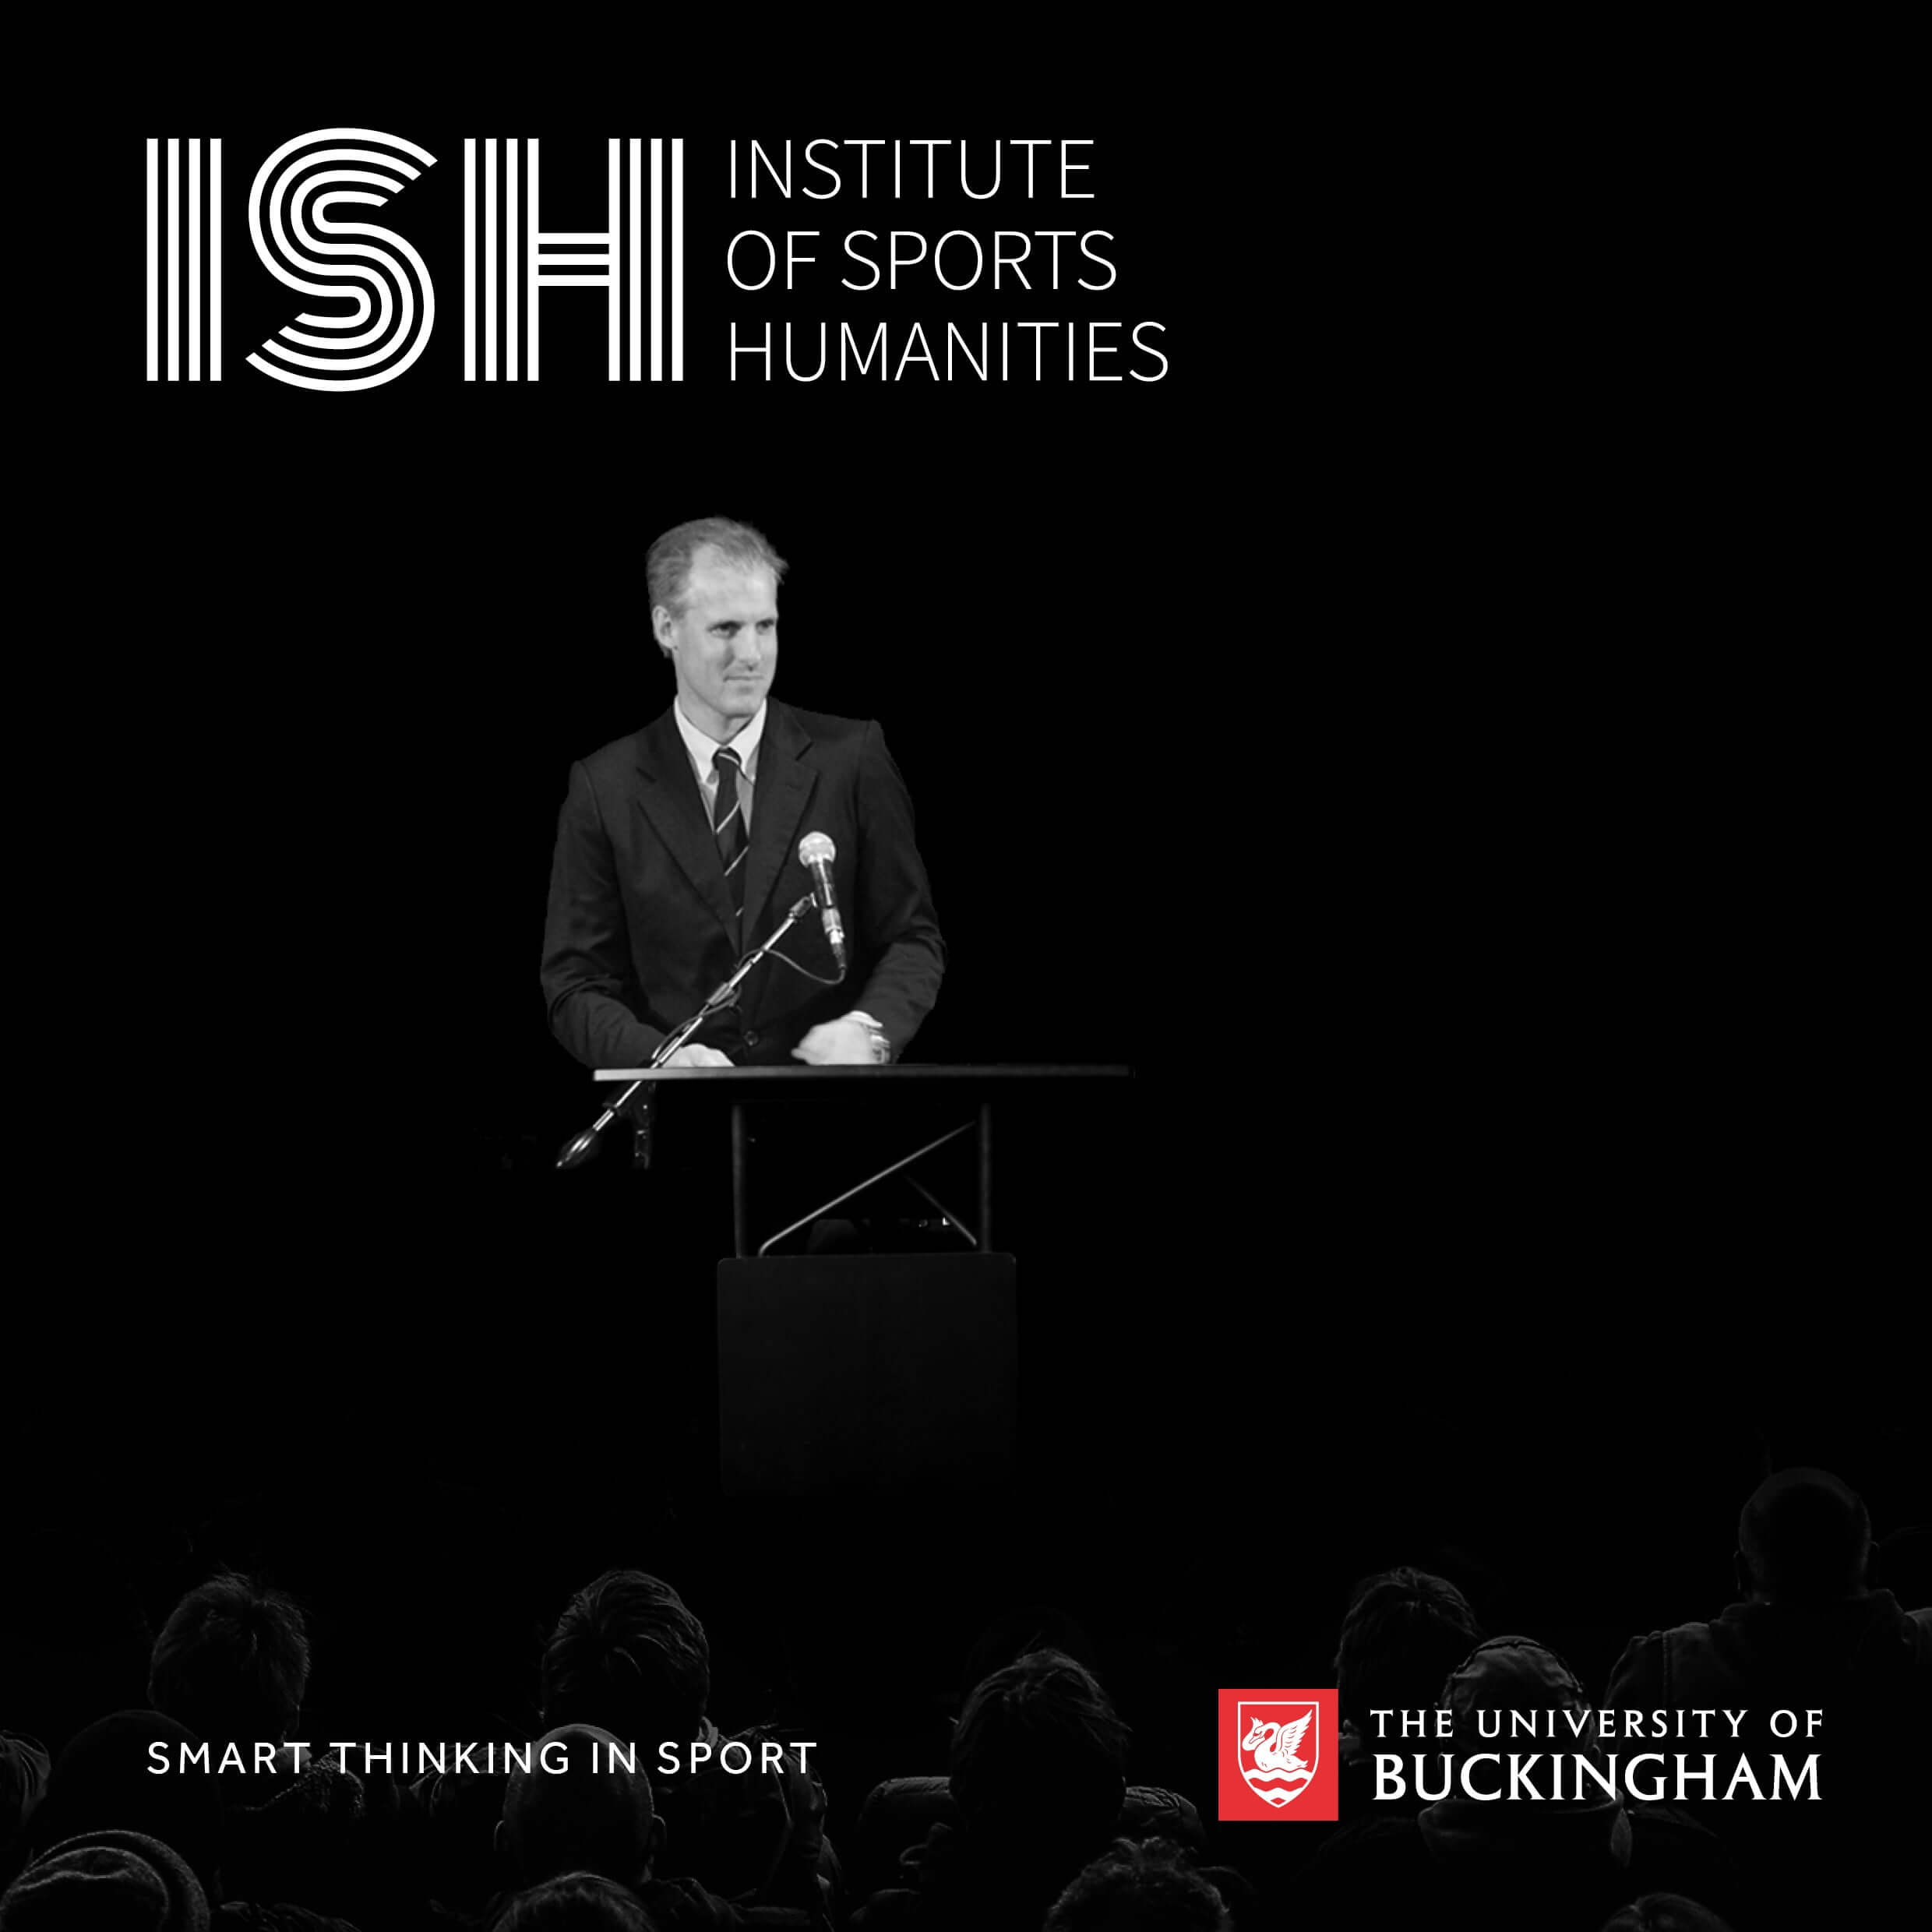 University of Buckingham - Institute of Sports Humanities (ISH)